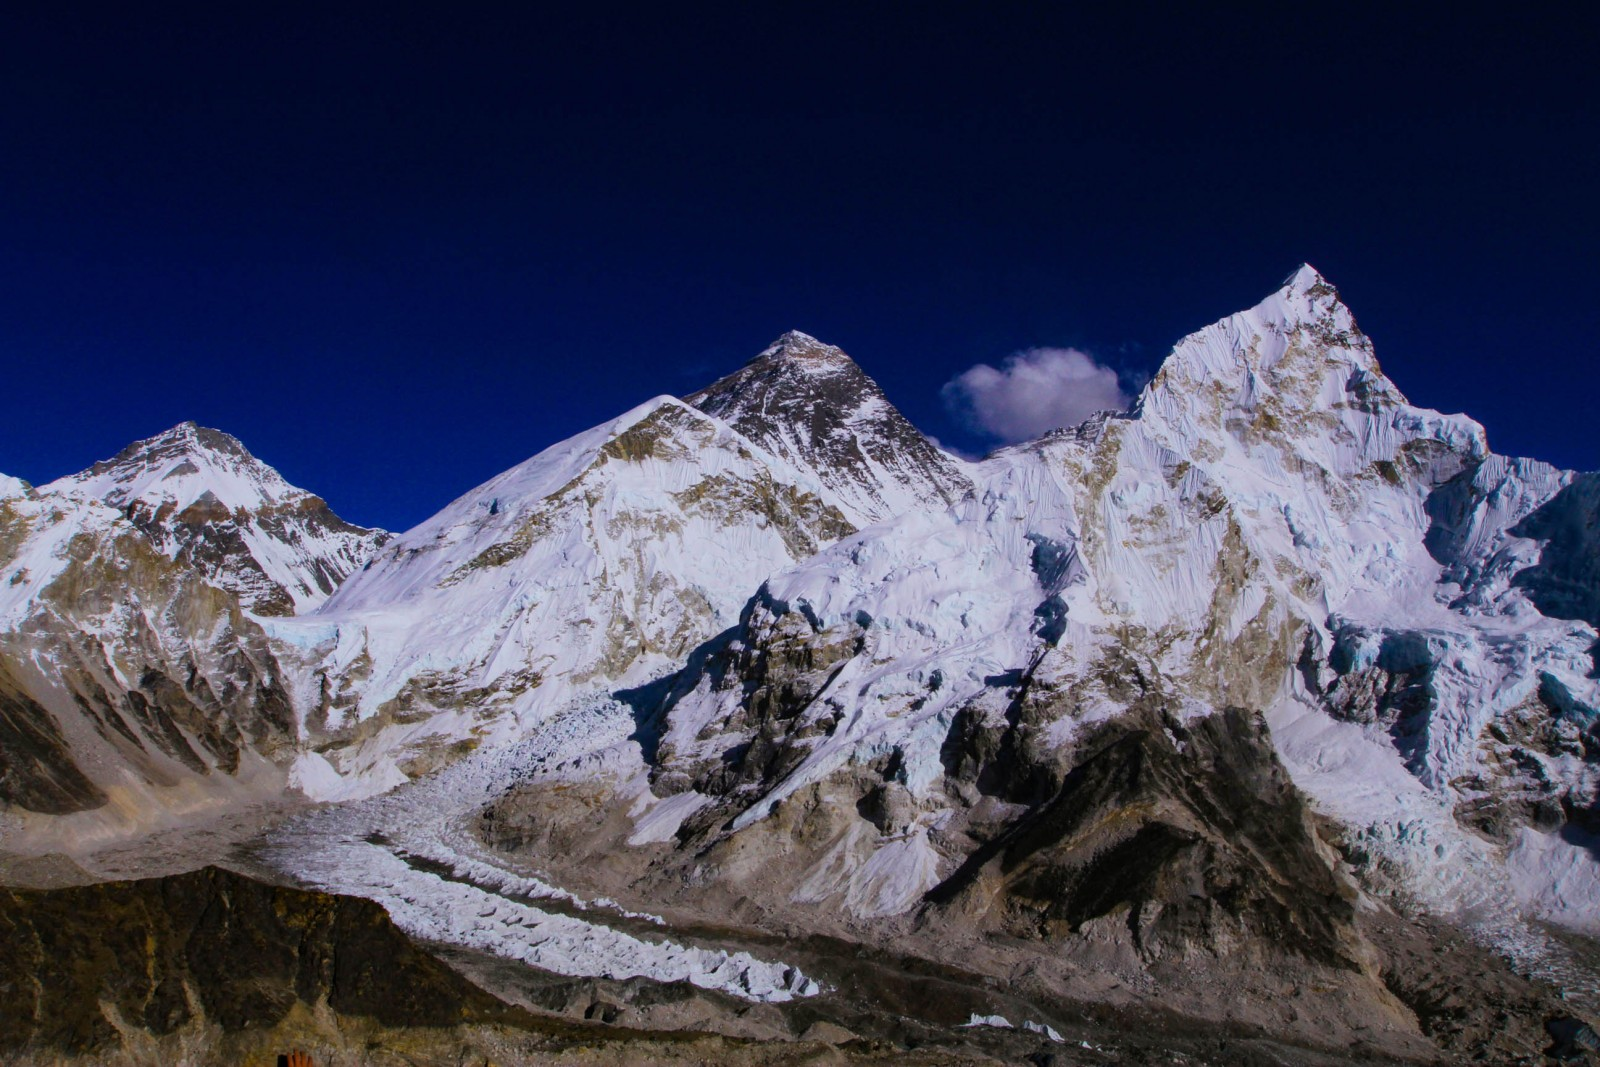 Everest Region trekking in Nepal